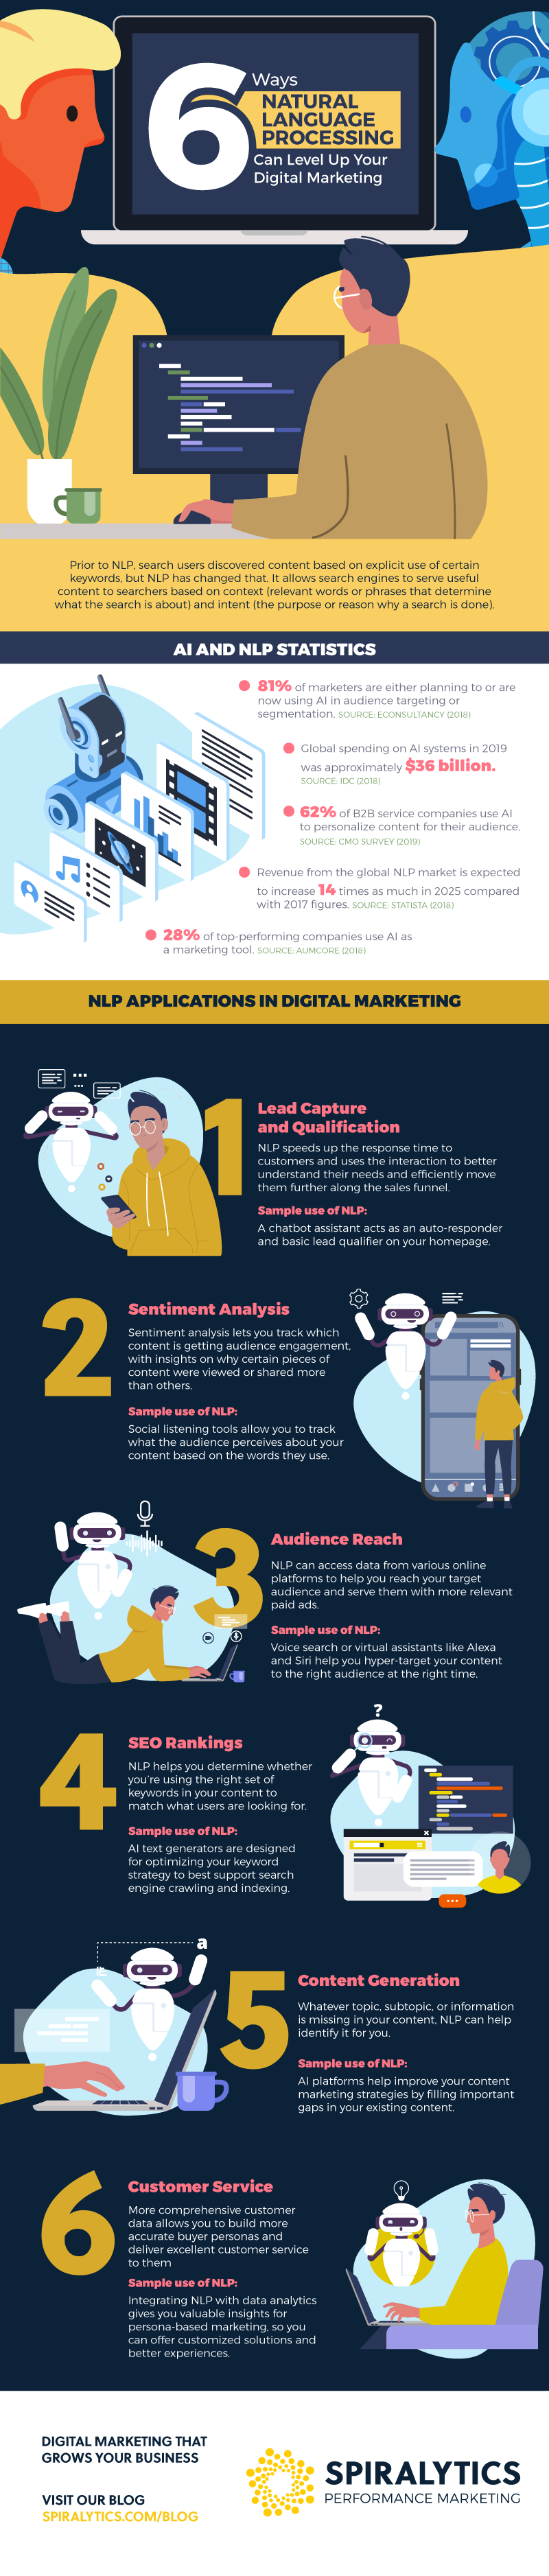 6 Ways Natural Language Processing Can Level Up Your Digital Marketing #infographic #Marketing #Digital Marketing #Language Processing